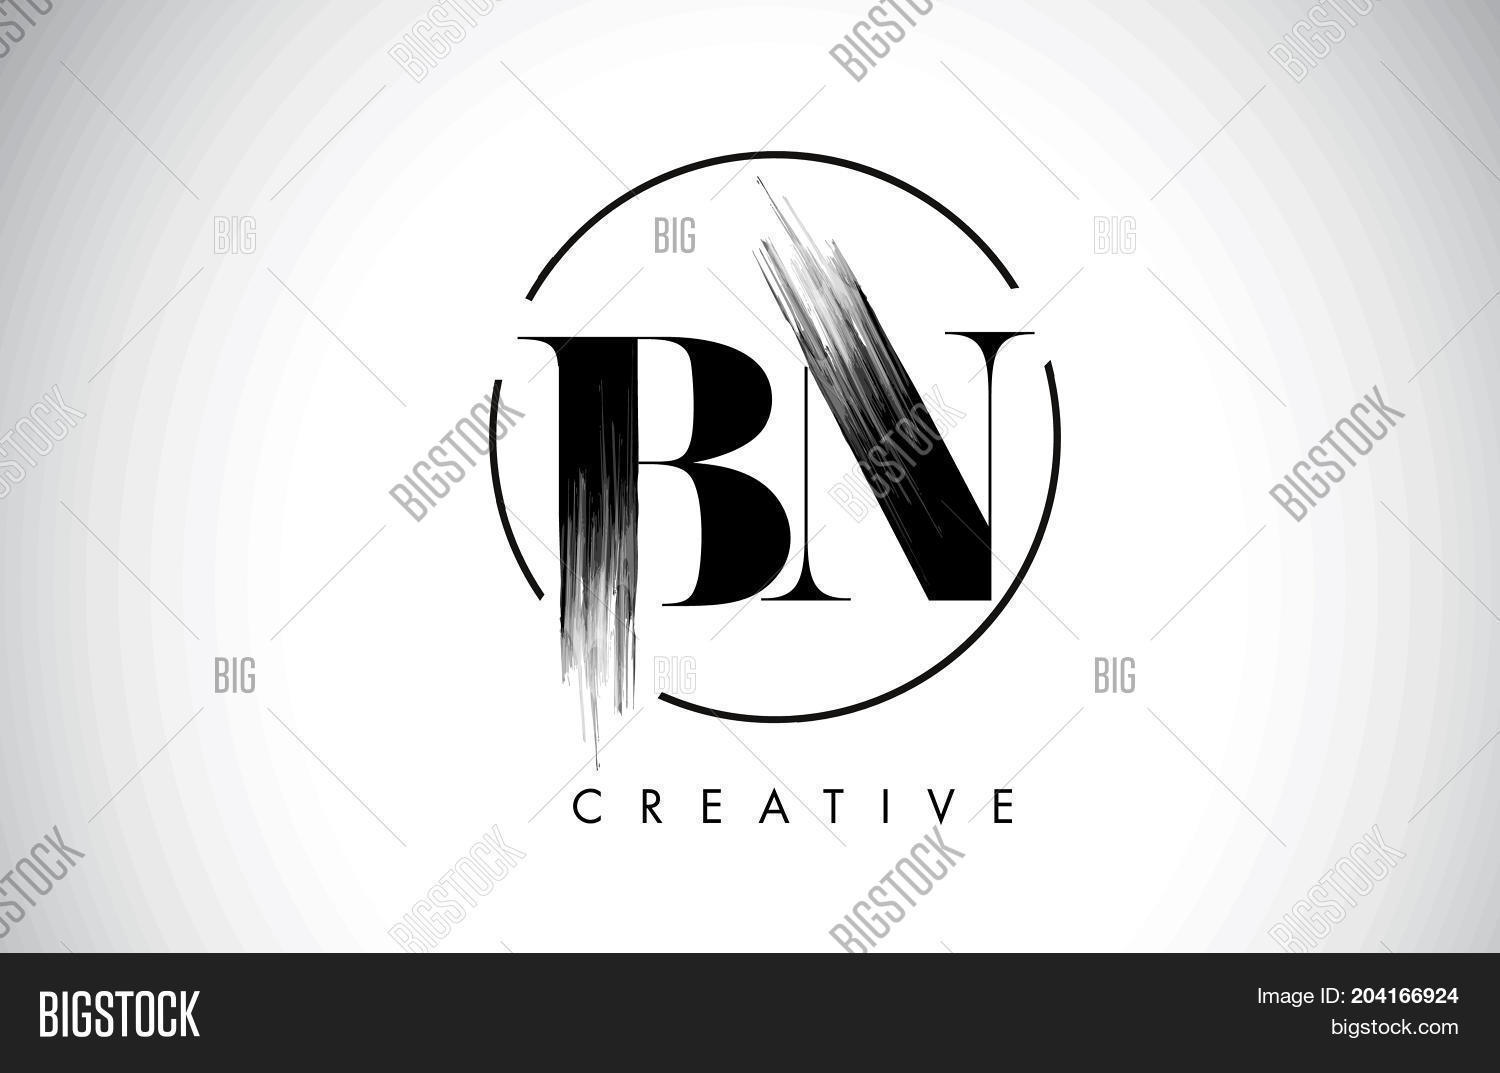 B,BN,N,abstract,art,artistic,black,blog,brush,business,circle,clean,company,concept,corporate,creative,design,elements,font,icon,idea,identity,illustration,letter,logo,modern,page,paint,painted,personal,shape,sign,stroke,symbol,template,text,trend,trendy,typography,vector,web